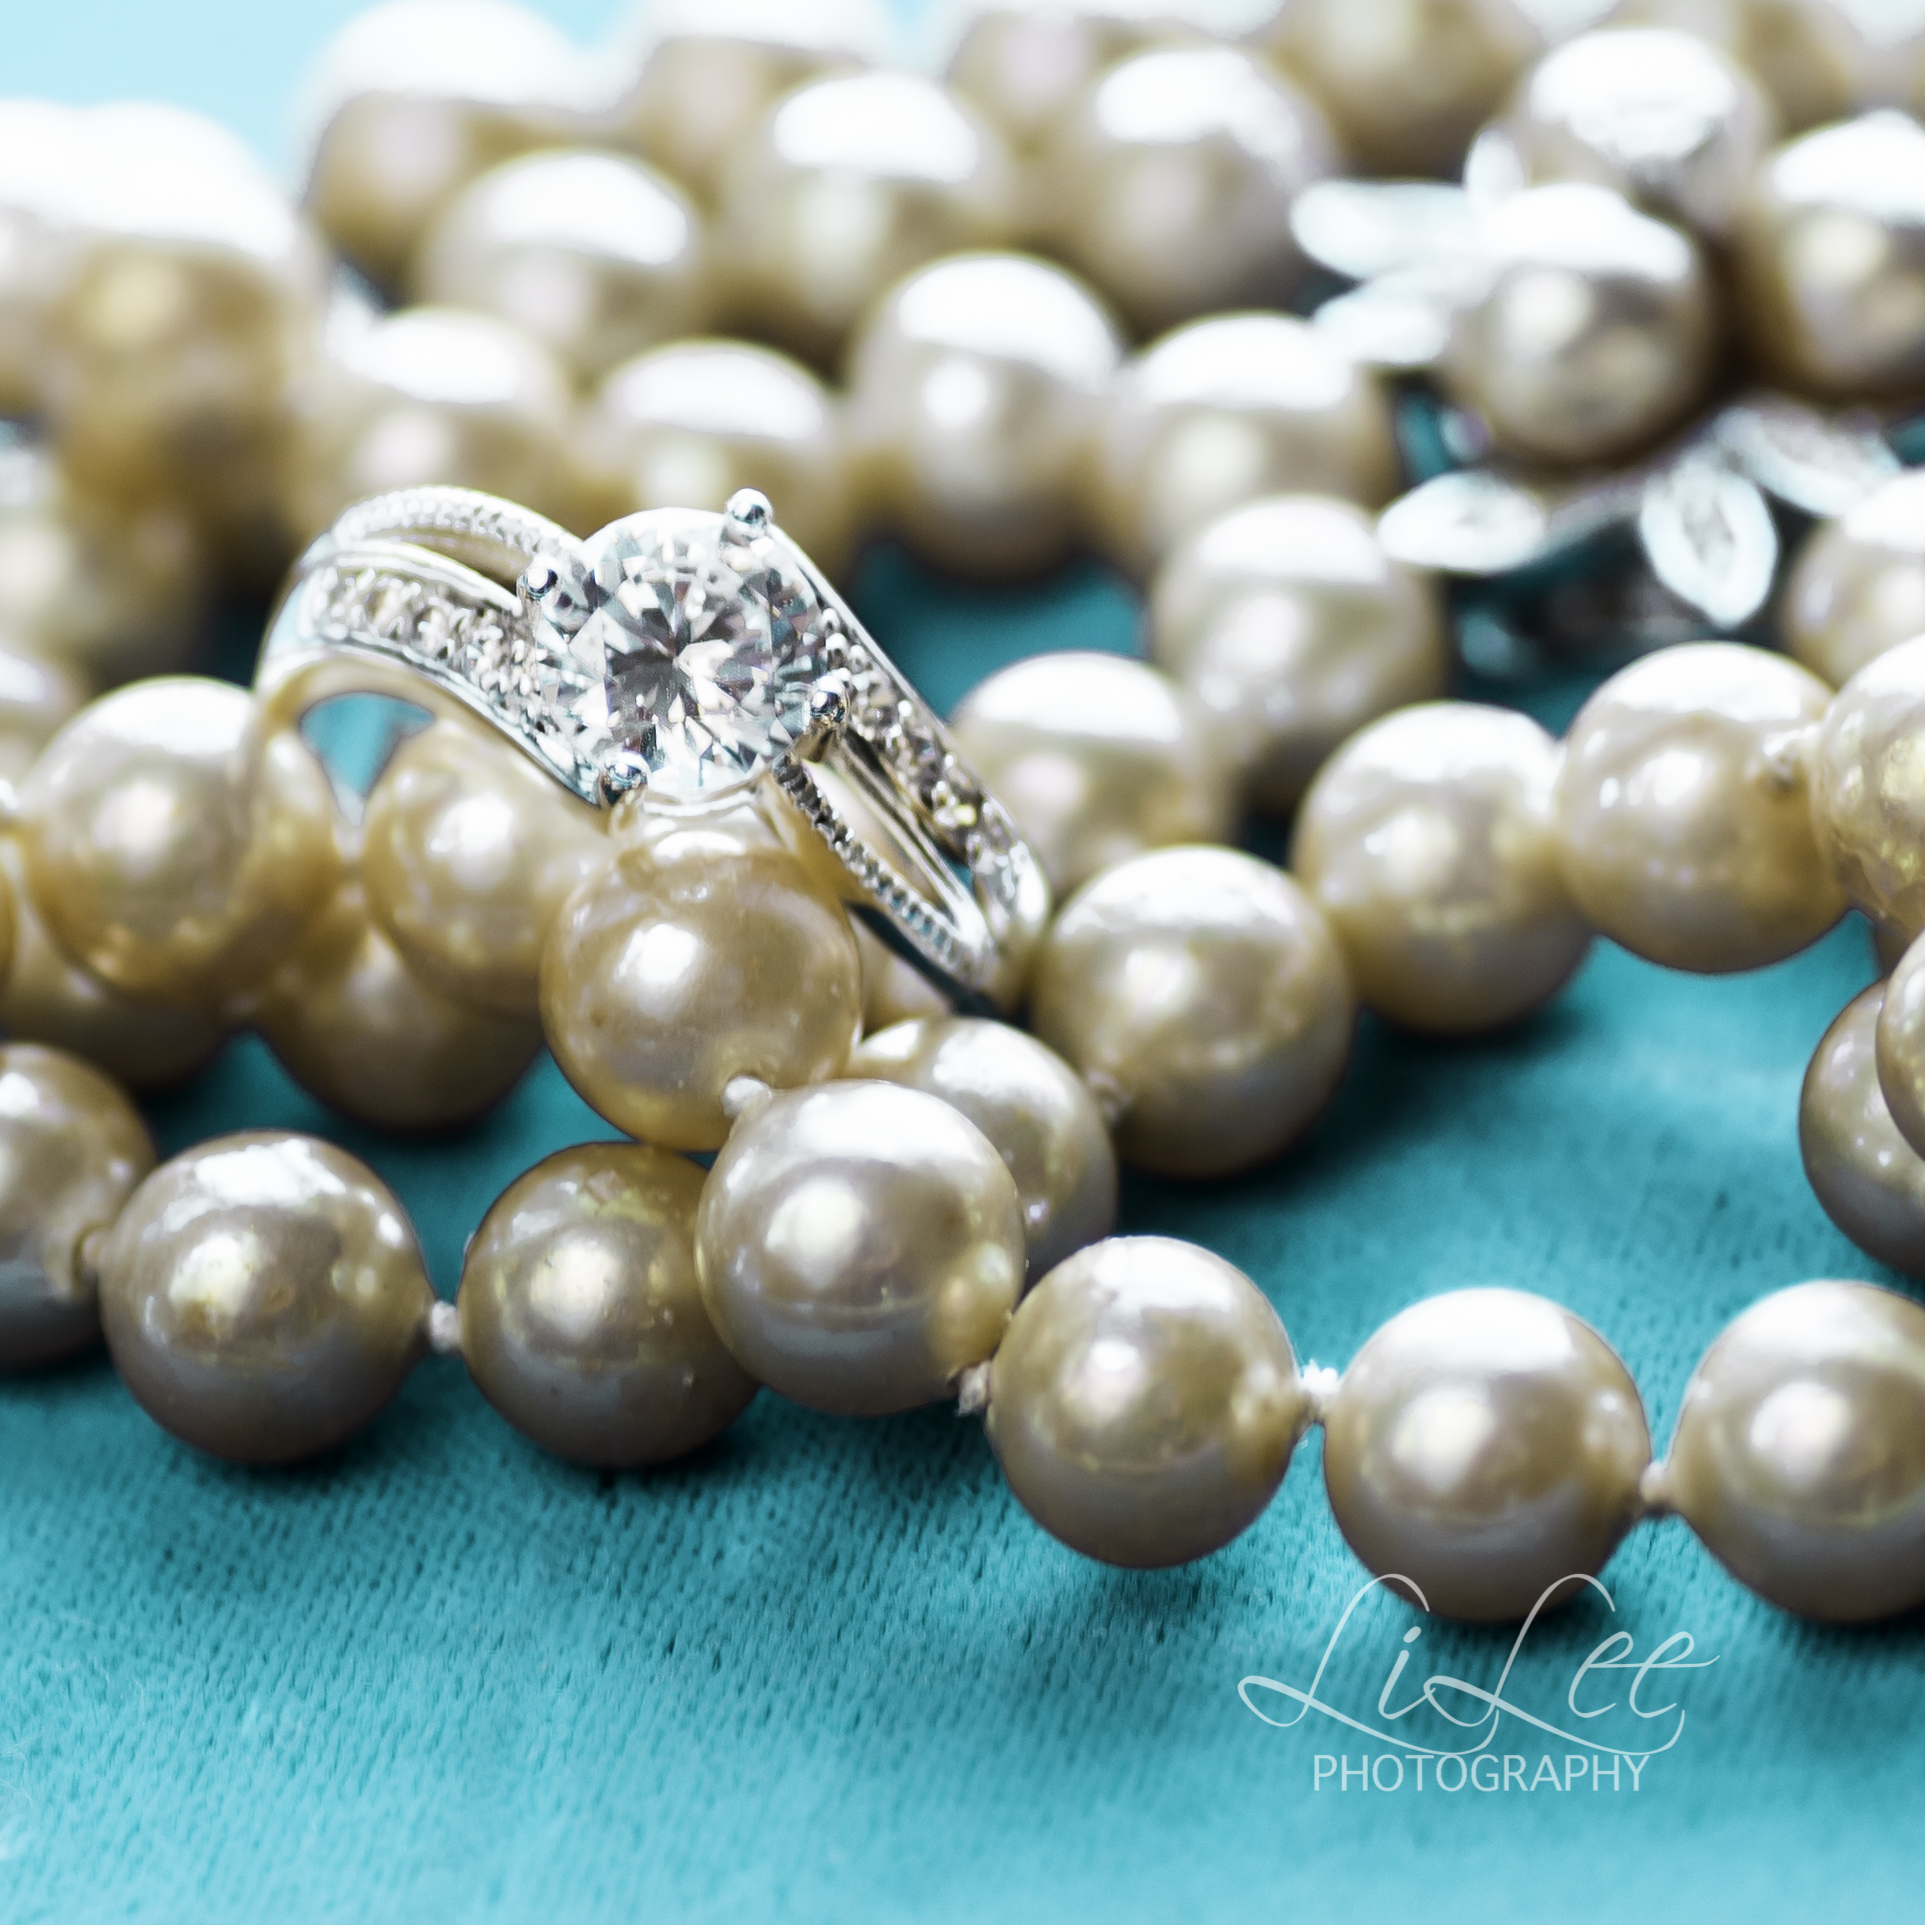 February Bling for the Newly Engaged - Portrait & Wedding